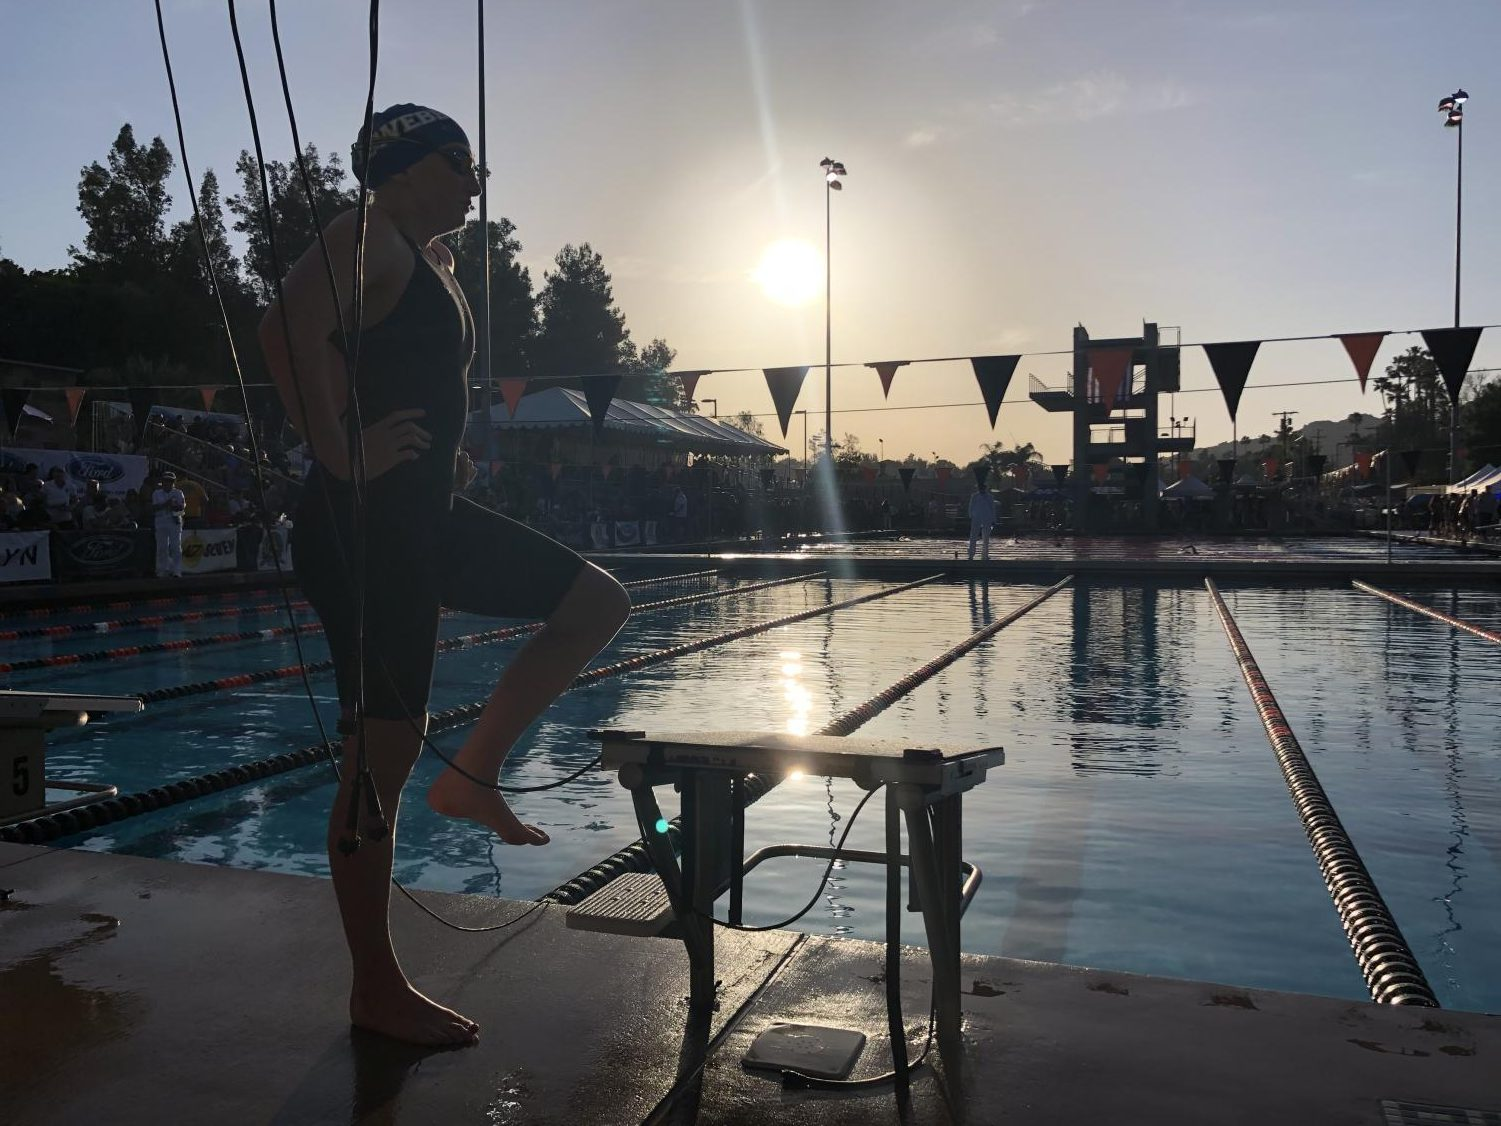 Rylie+Brick+%28%2719%29+swims+her+last+individual+race+of+CIF+SS+2019+and+defends+her++title+as+the+CIF+SS+D3+100+breaststroke+champion.